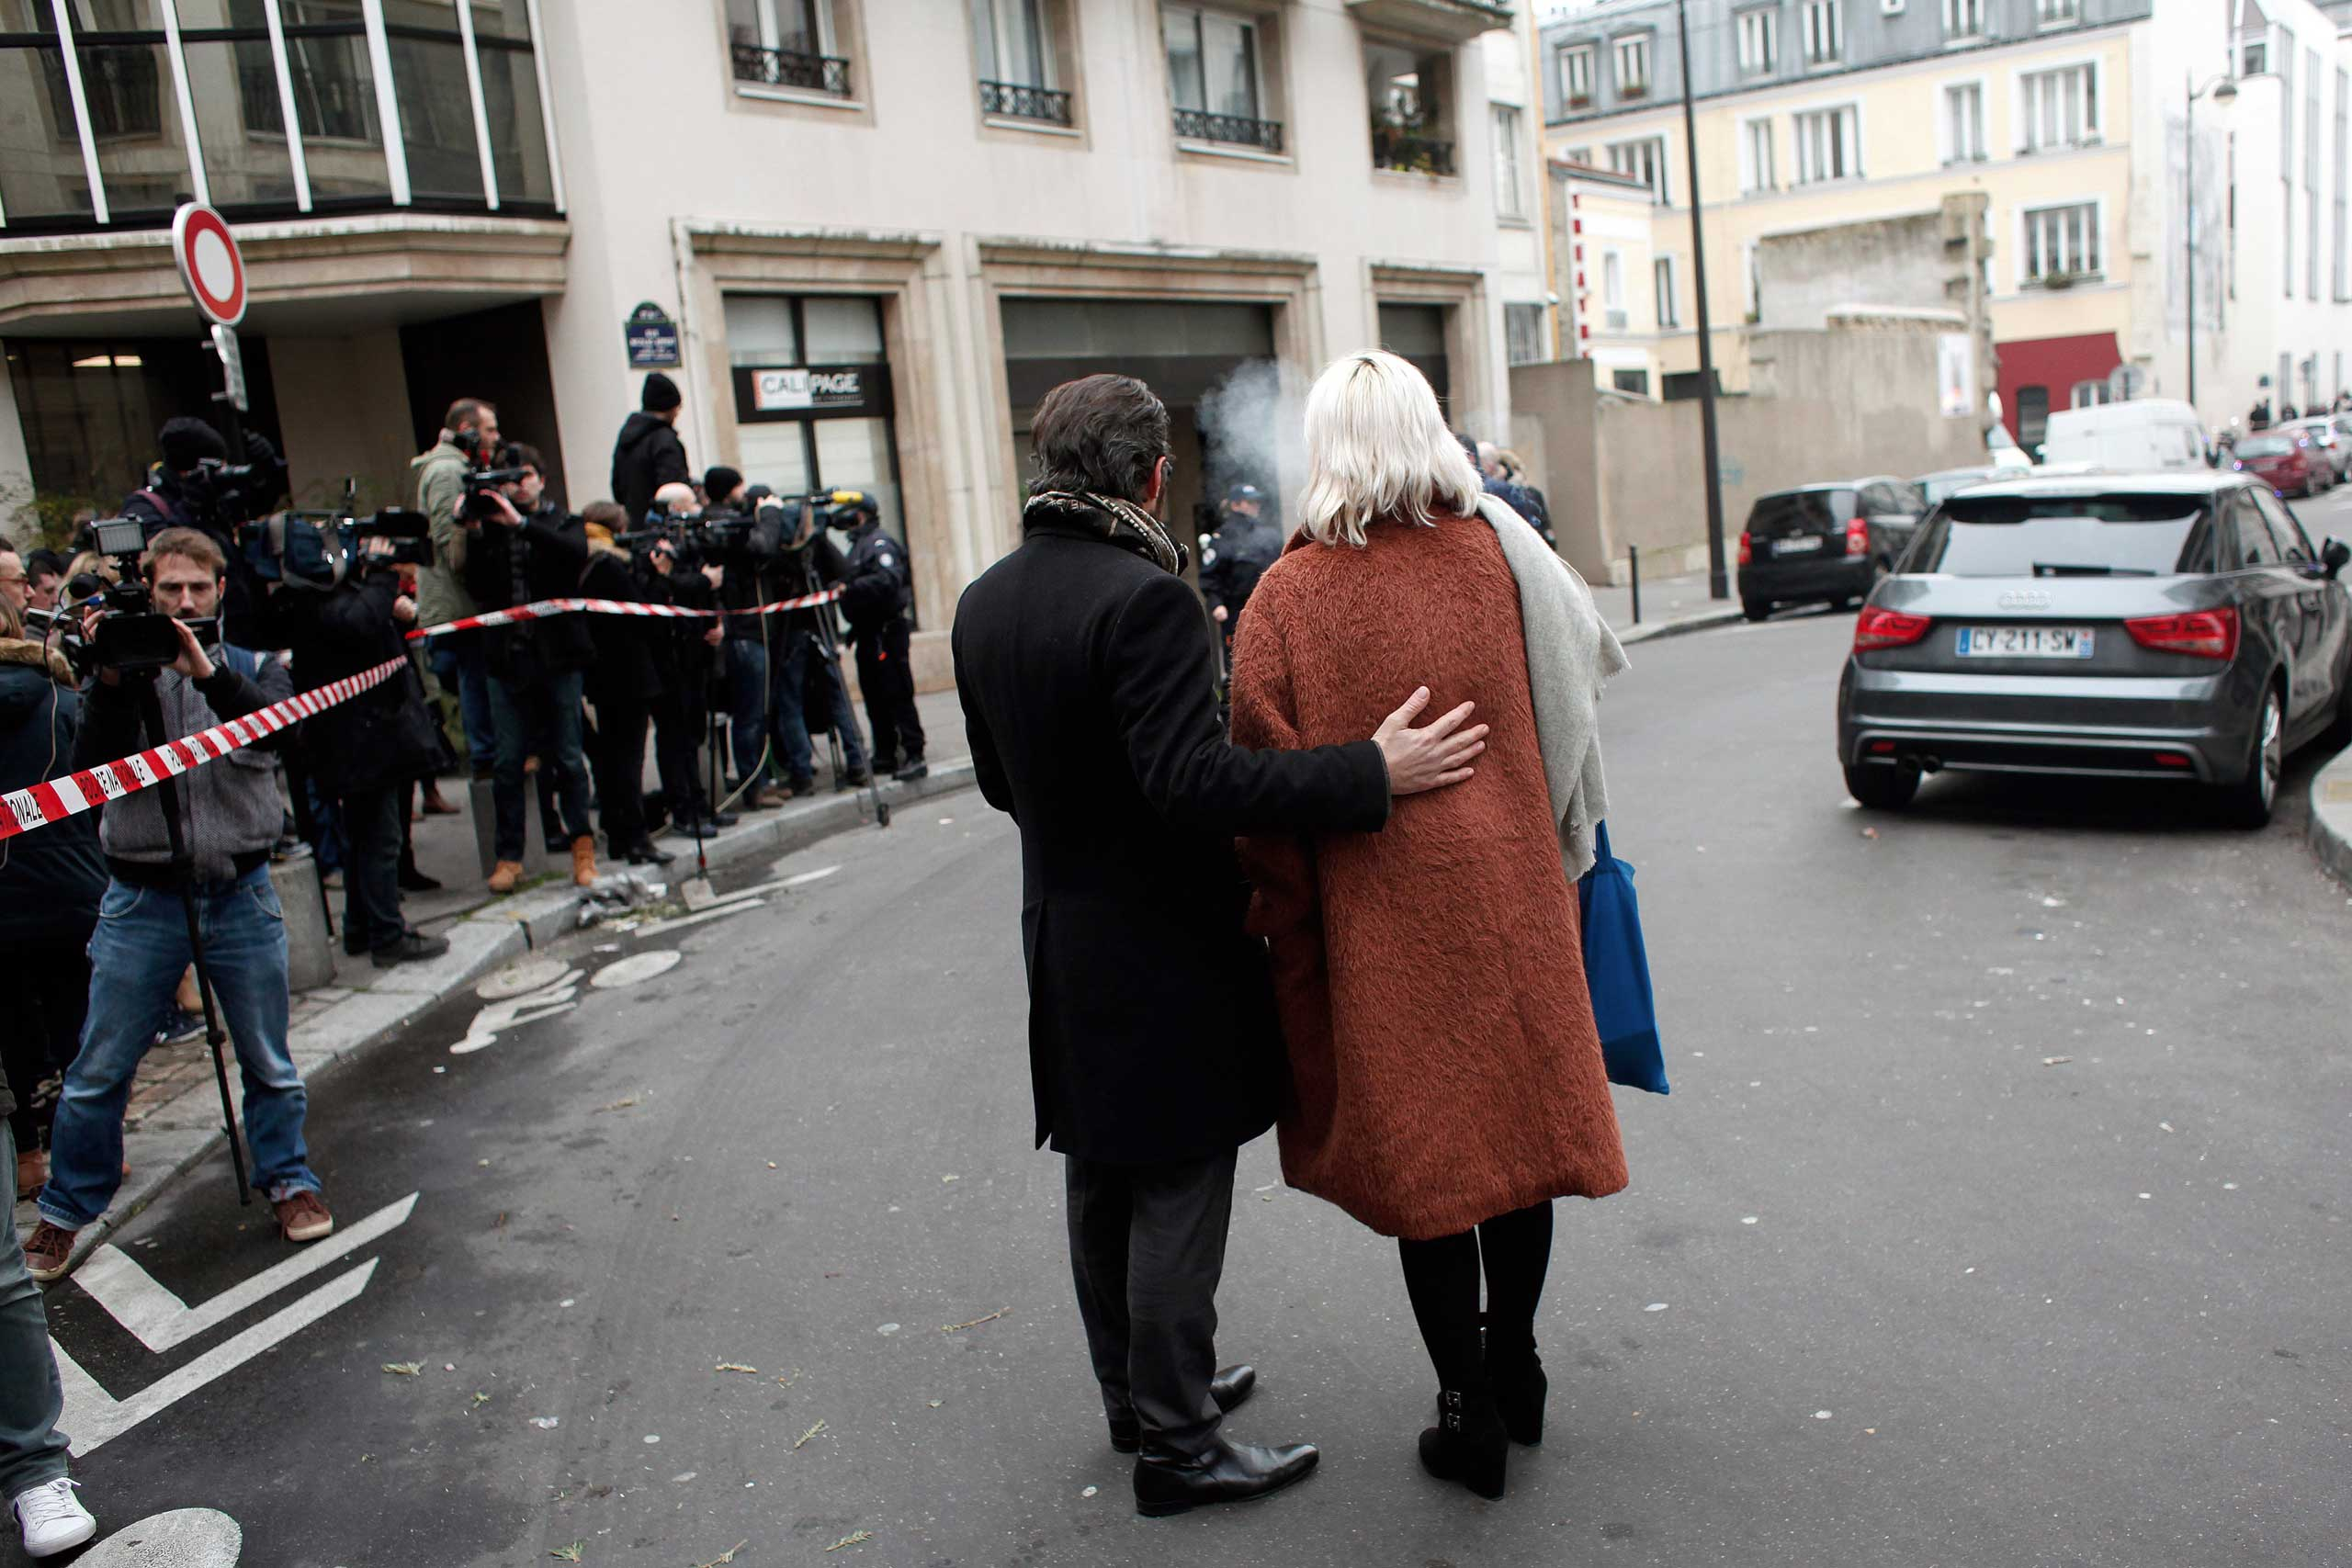 People stand outside the French satirical newspaper <i>Charlie Hebdo</i>'s office after a shooting, in Paris on Jan. 7, 2015